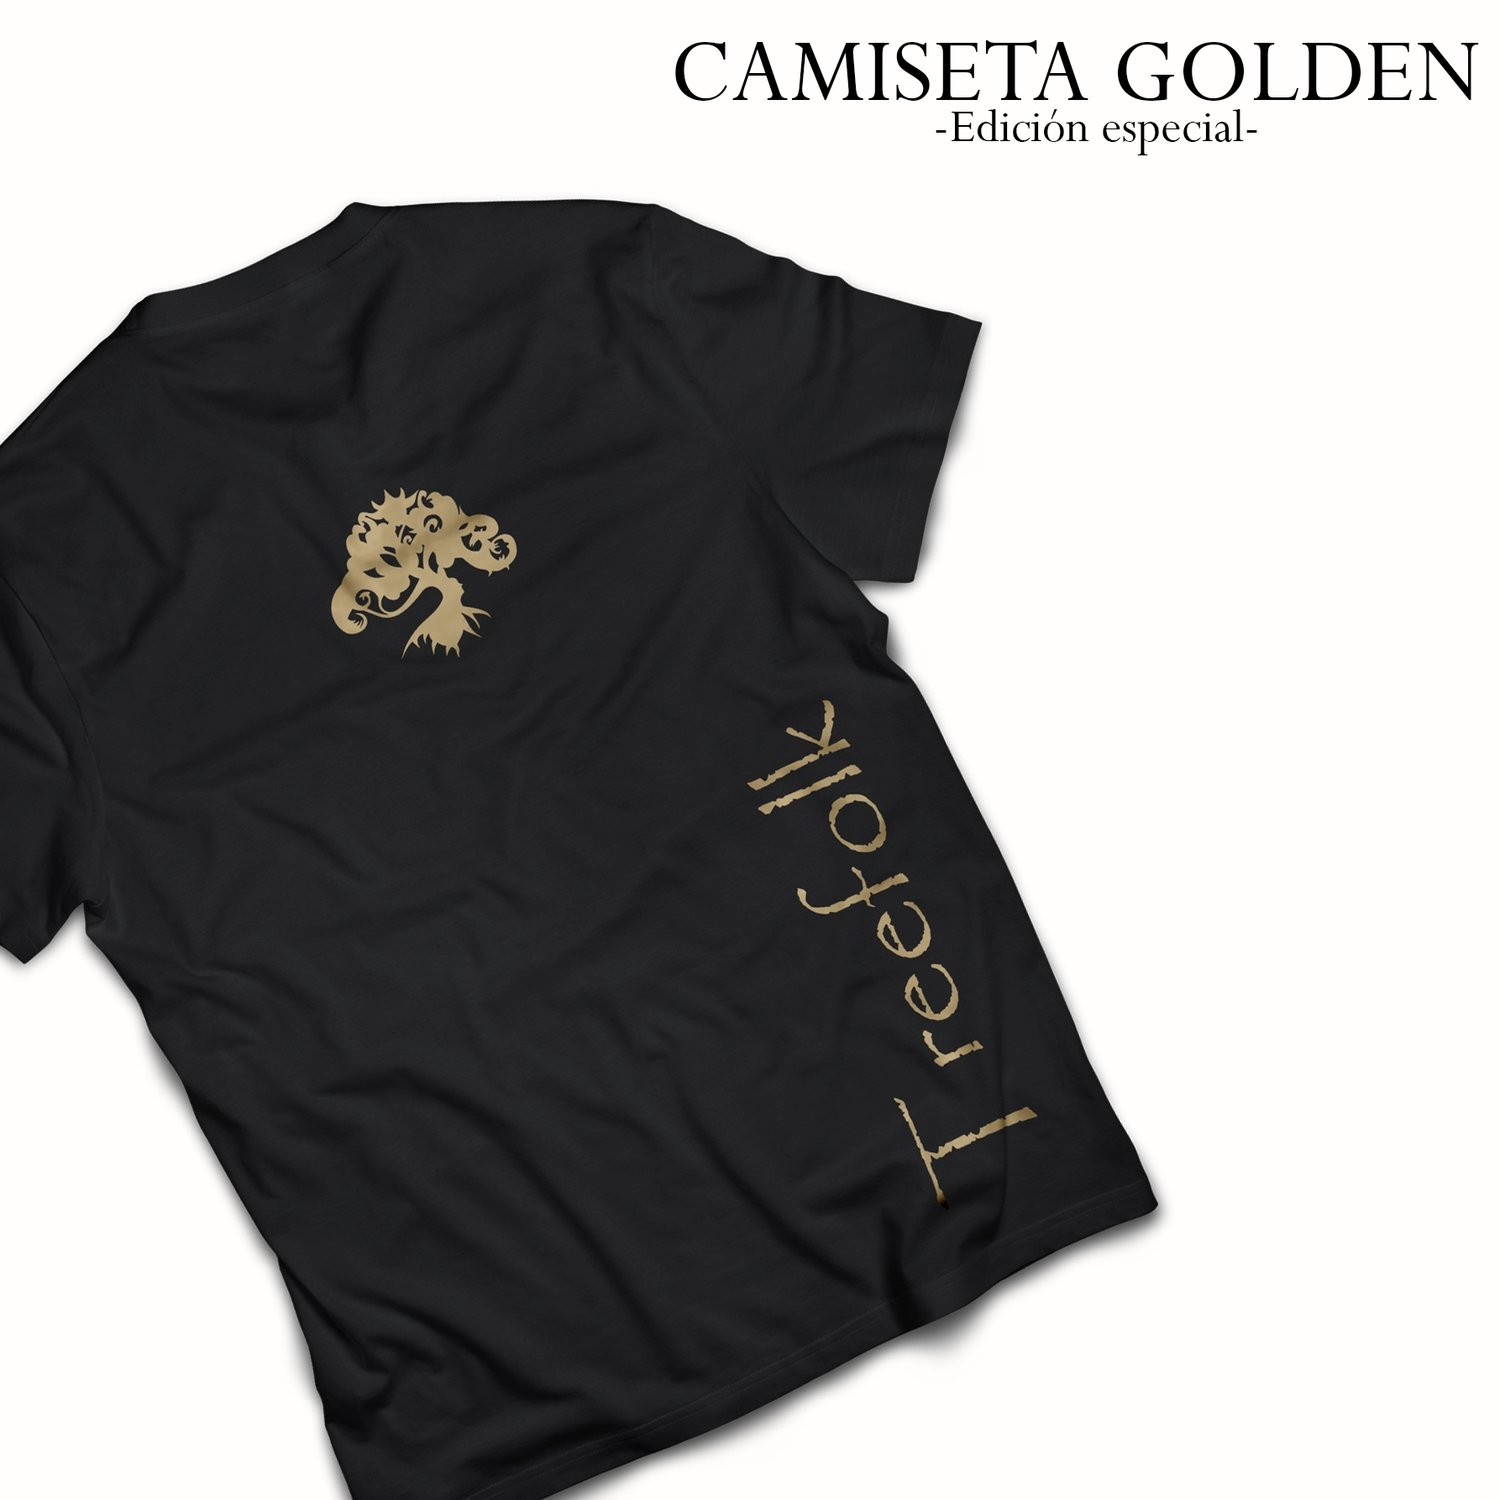 Camiseta Treefolk golden